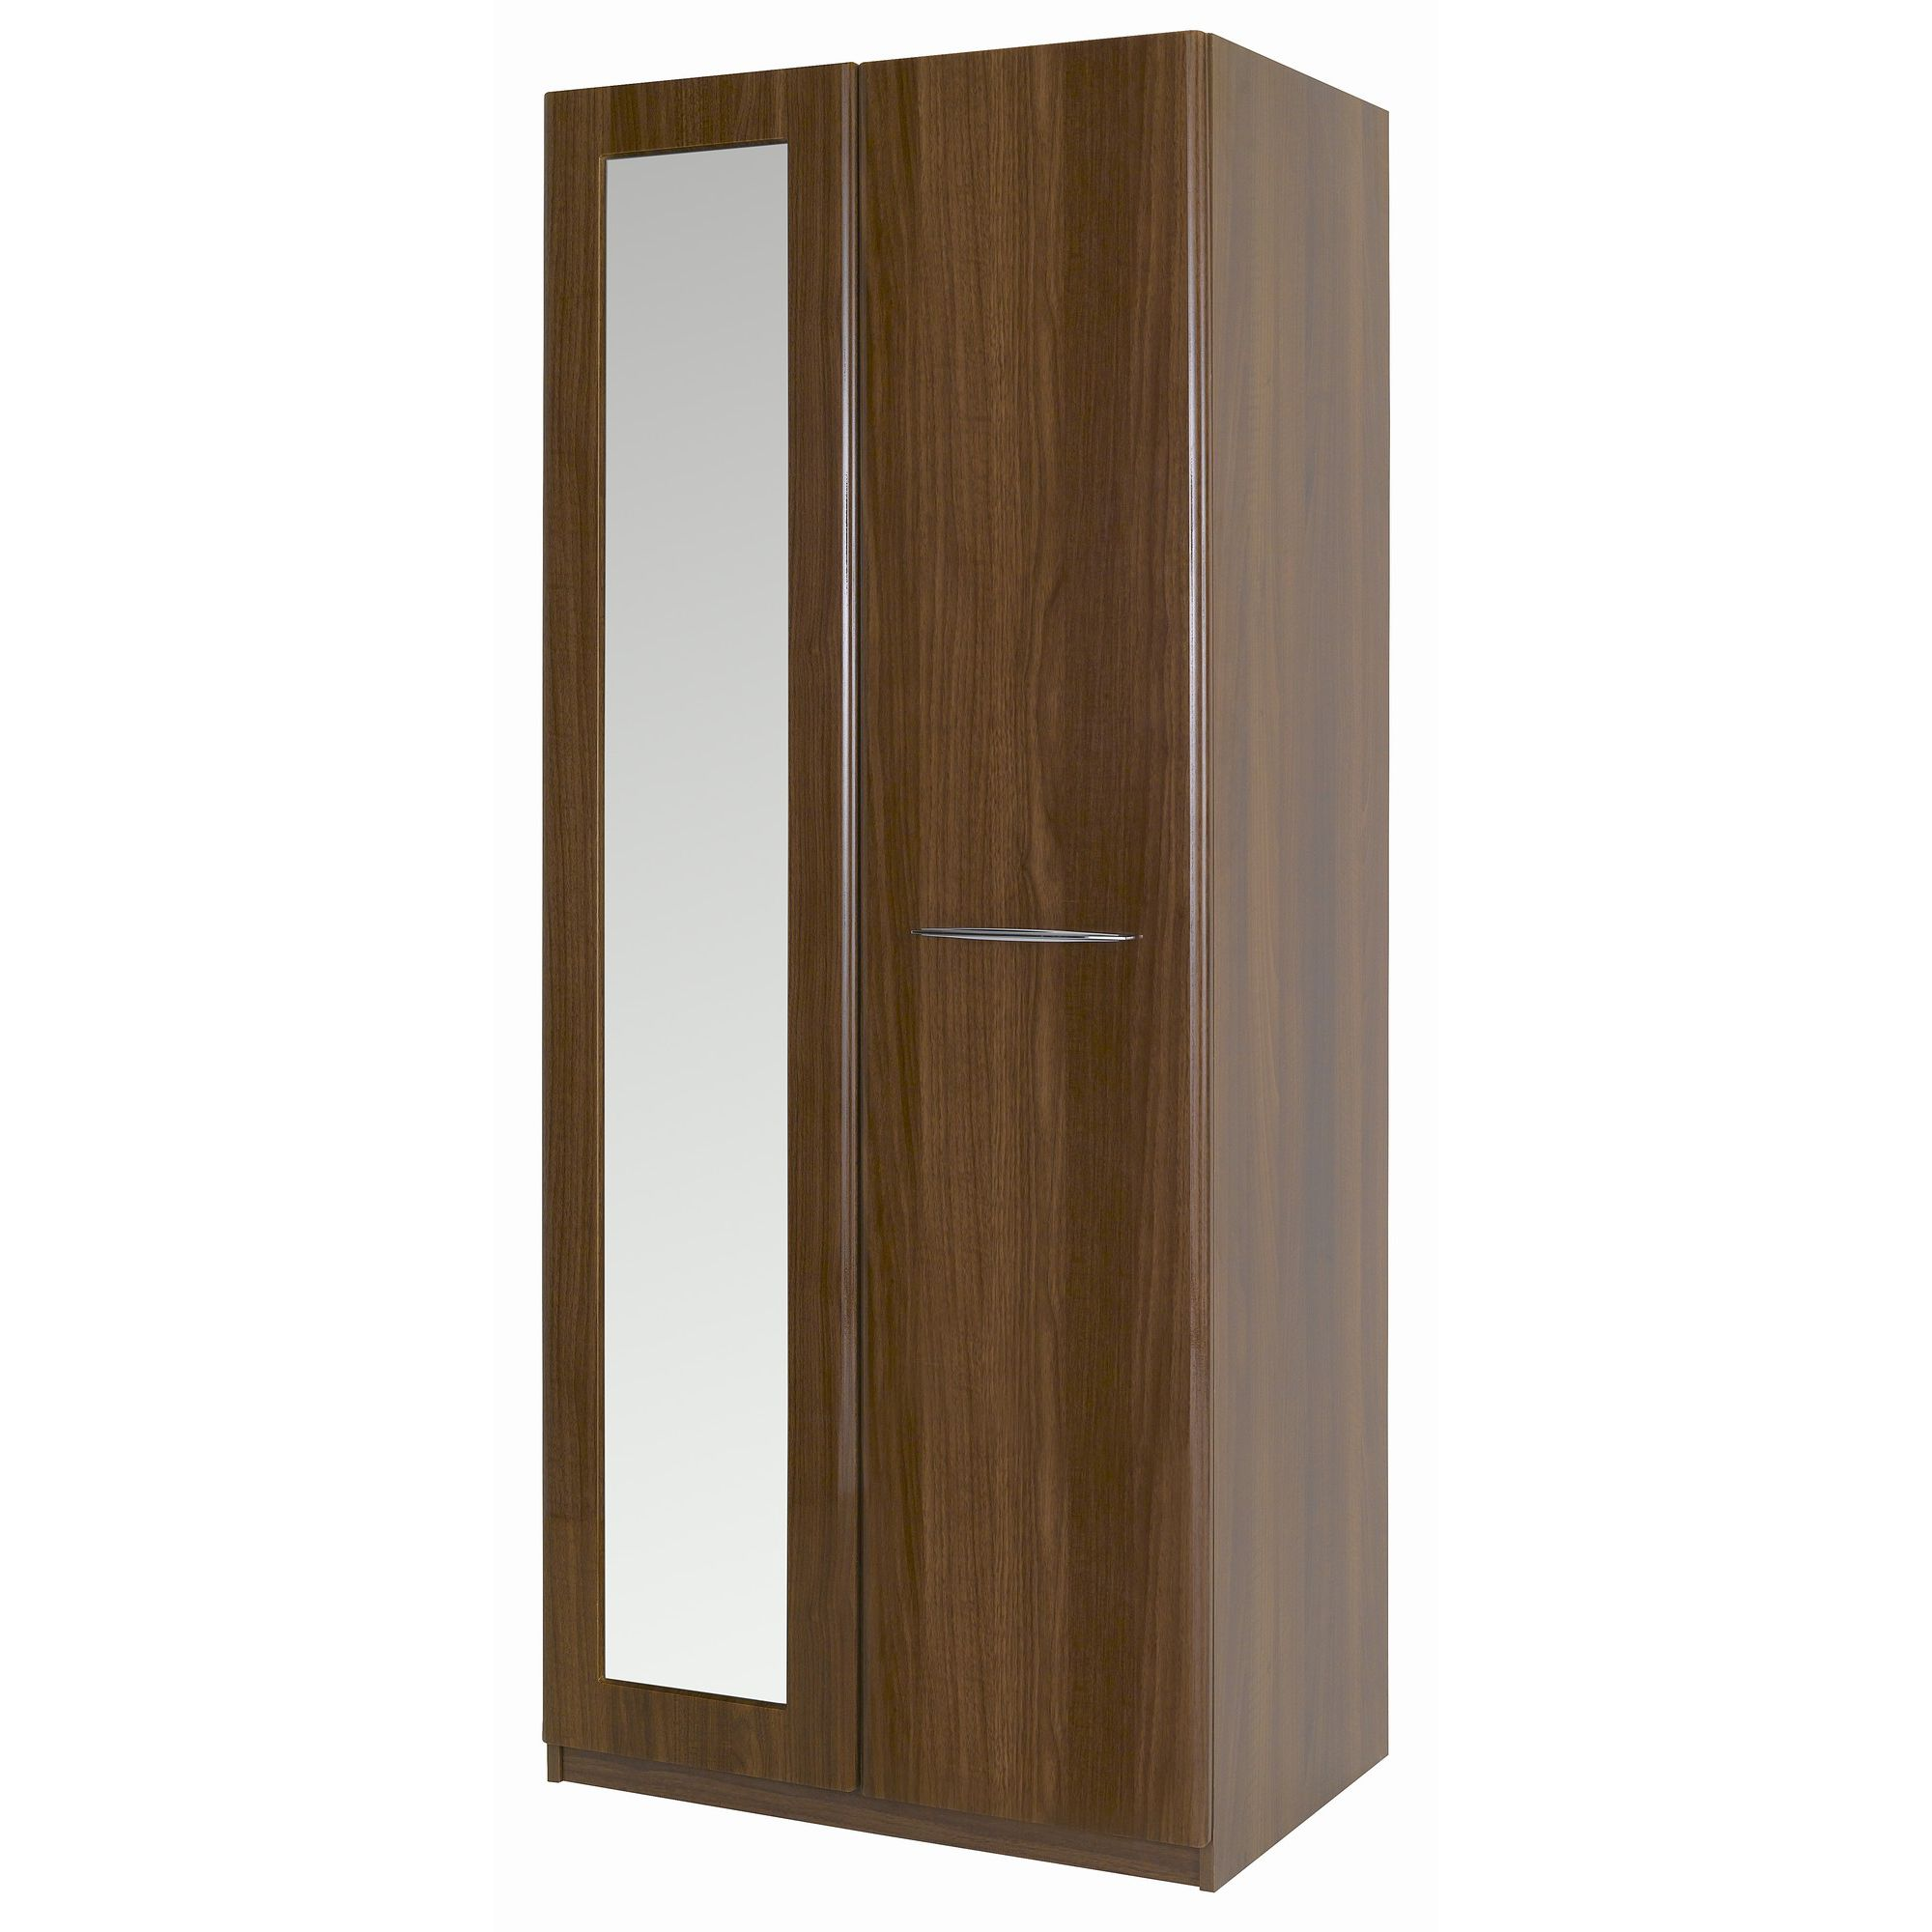 Alto Furniture Visualise Murano Wardrobe with Mirror in High Gloss Walnut at Tesco Direct